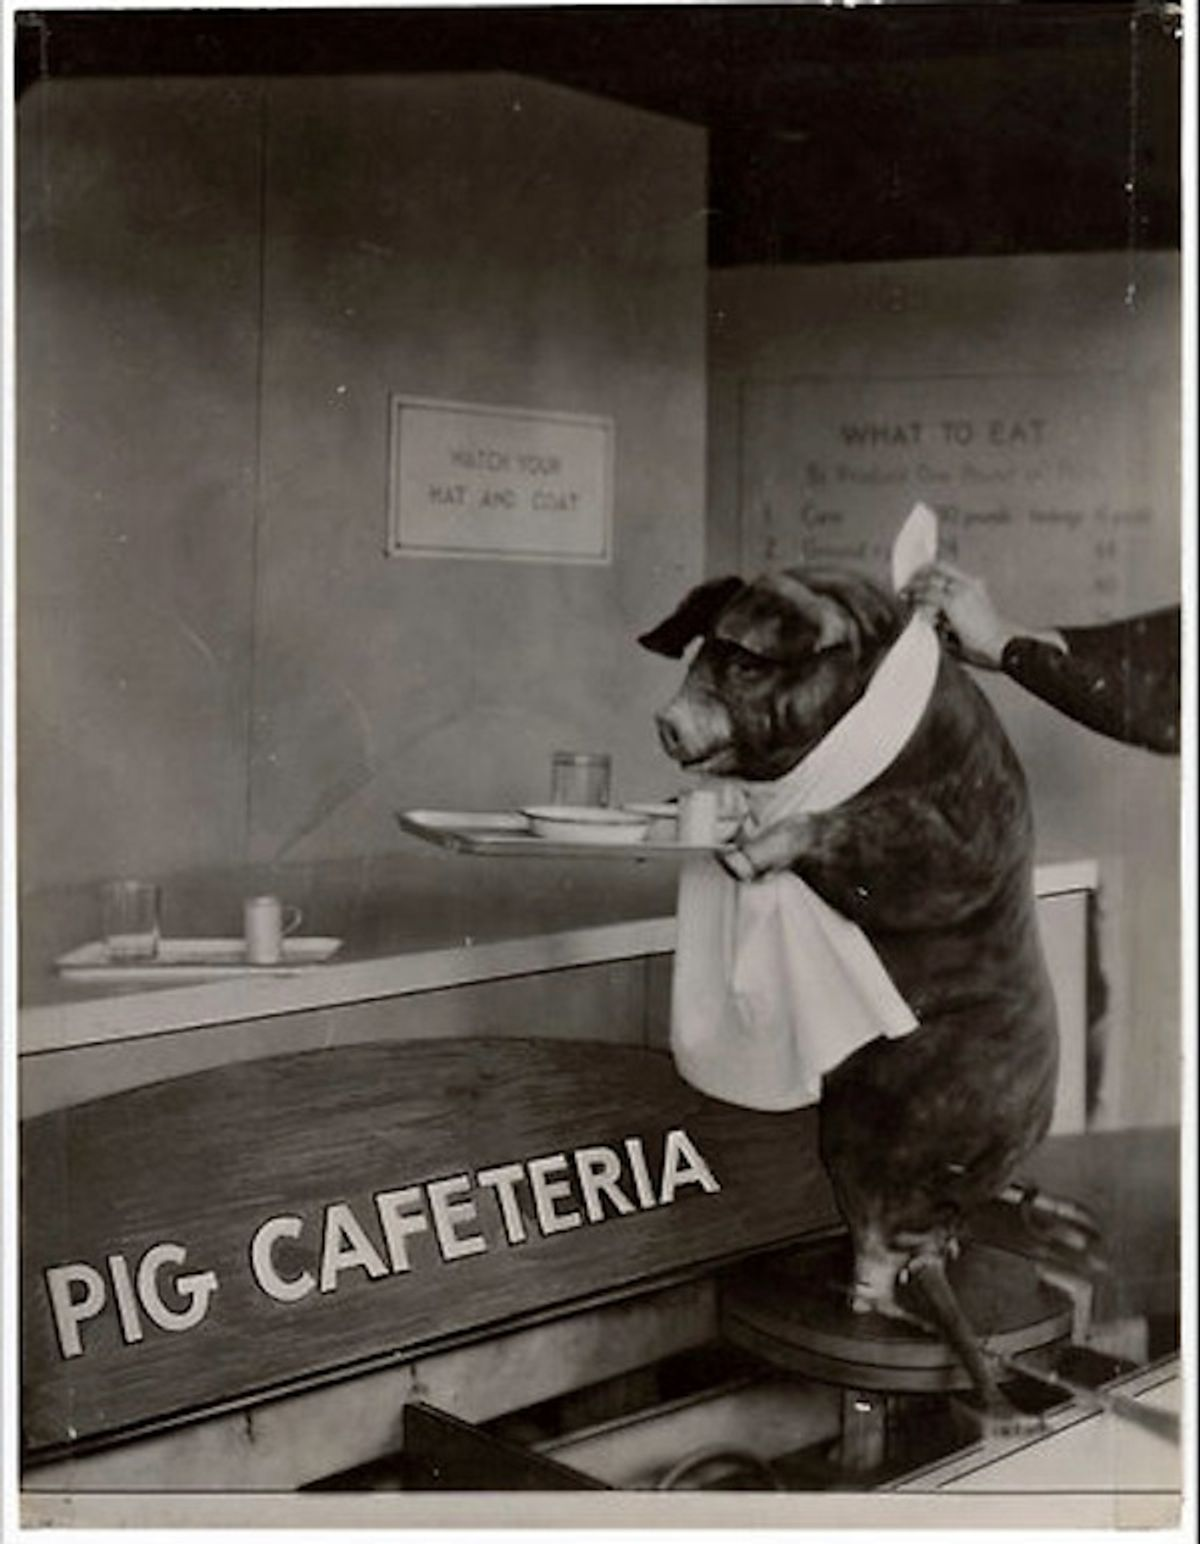 Government's attempts to explain healthy pig diet through motivational poster goes awry.